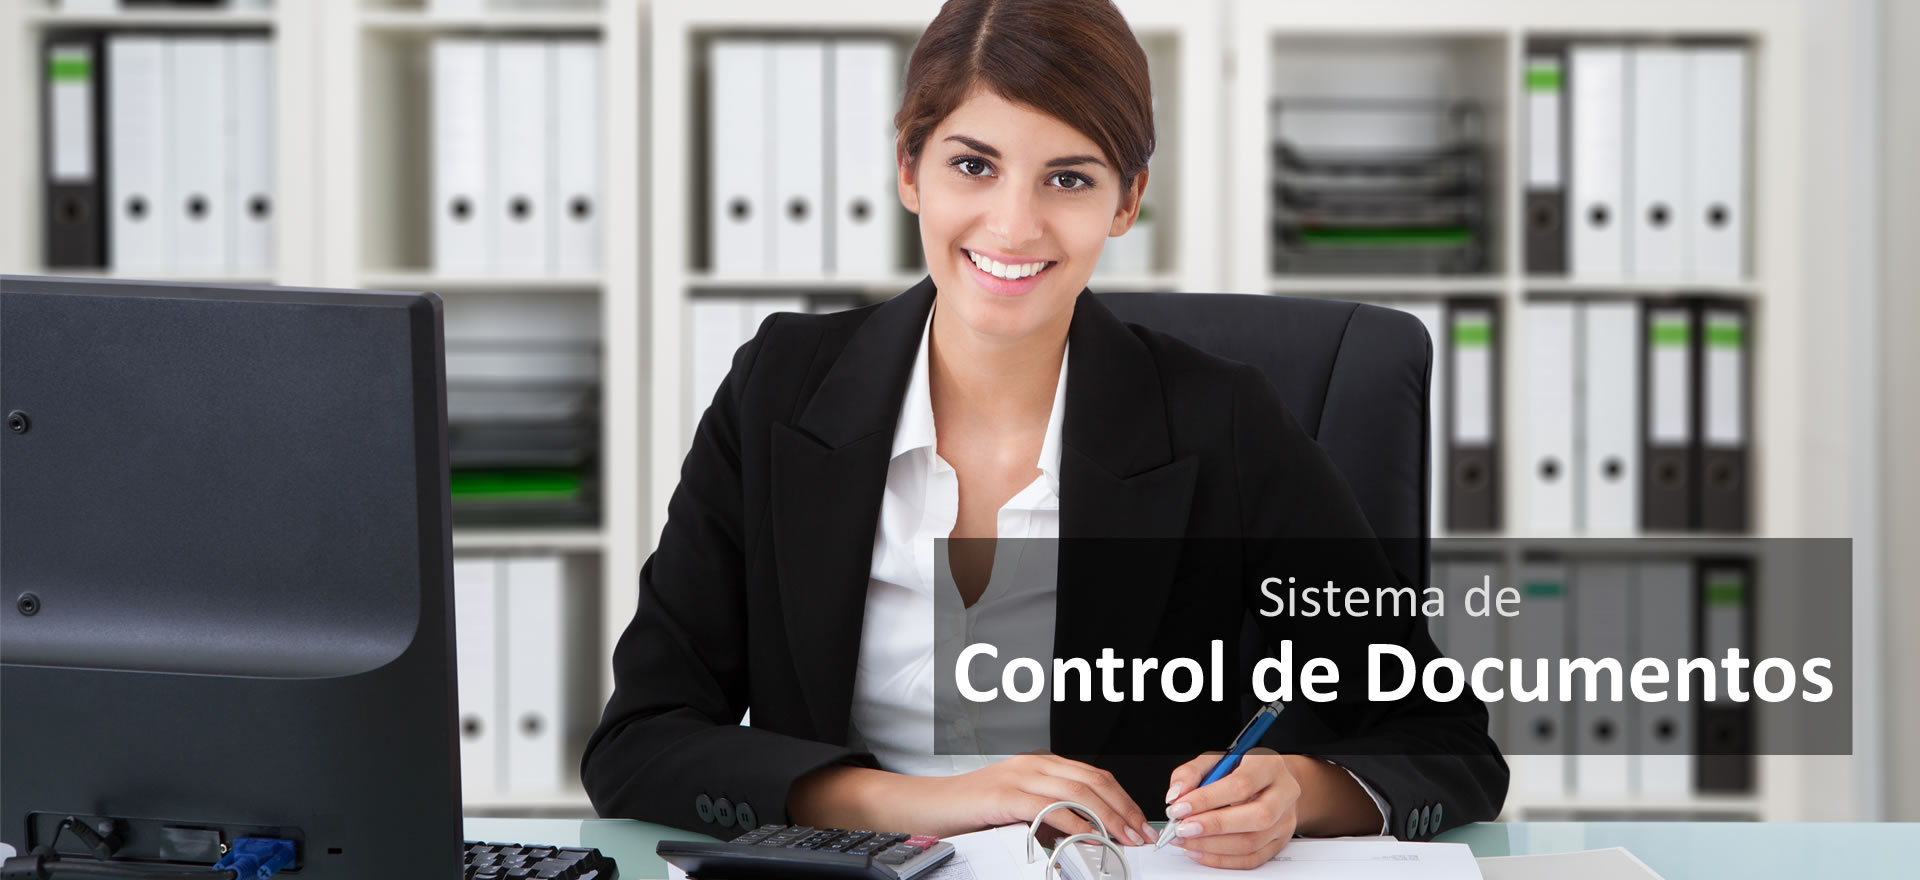 Sistema de Control de Documentos | Sistema de Gestion de Documentacion Juridica